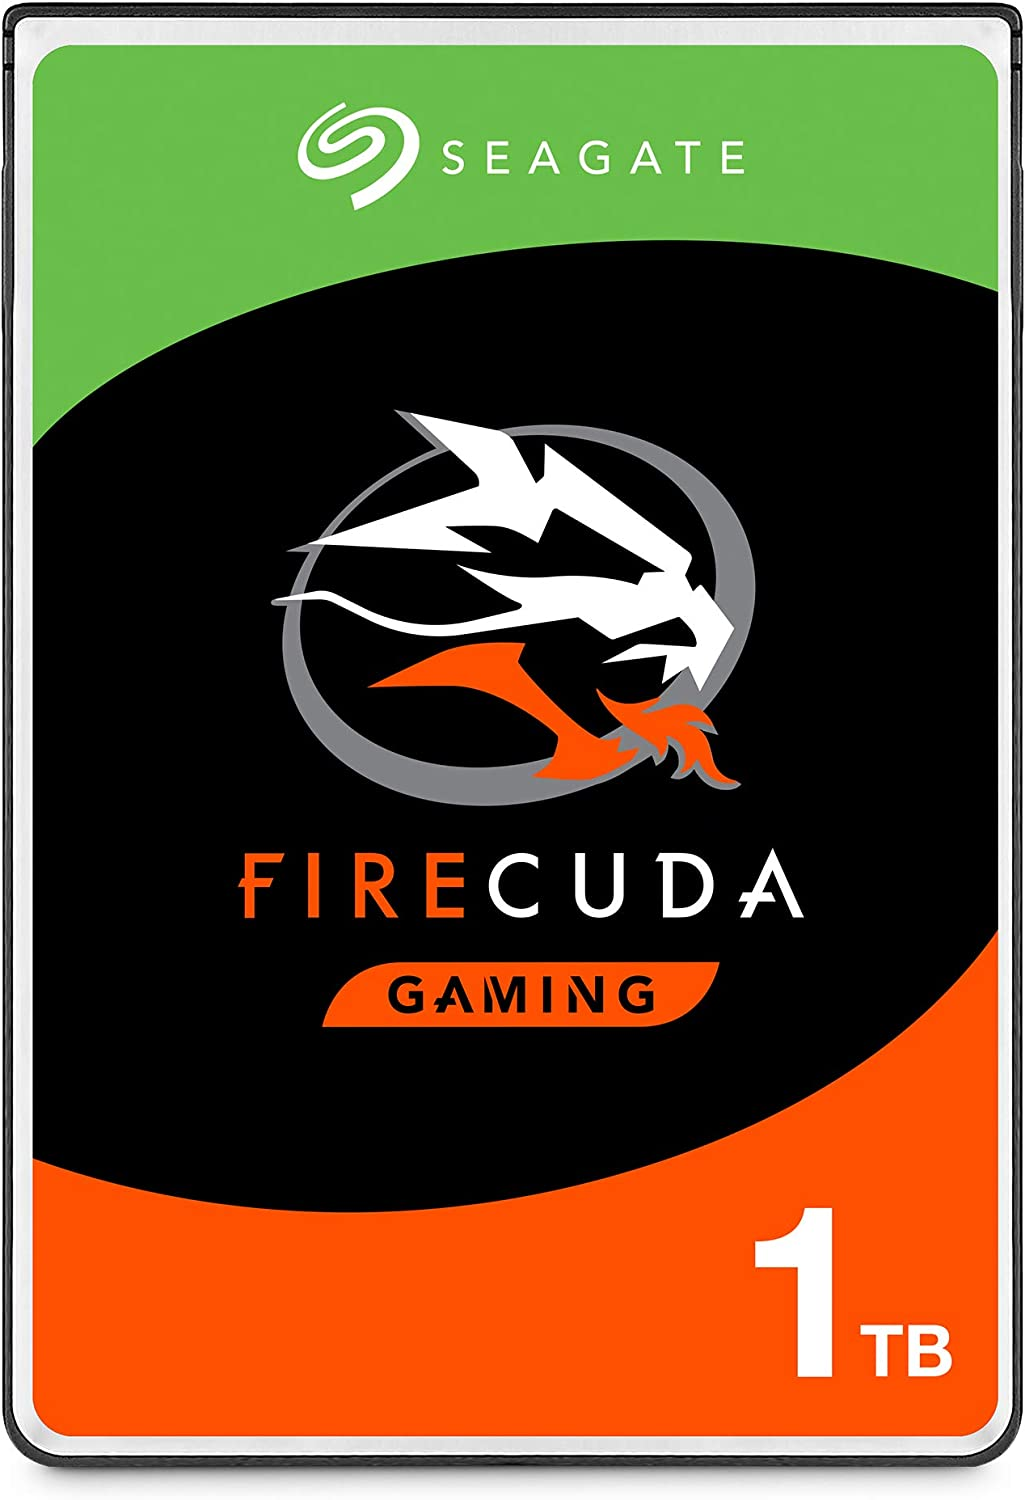 Seagate FireCuda 1TB Solid State Hybrid Drive Performance SSHD – 2.5 Inch SATA 6GB/s Flash Accelerated for Gaming PC Laptop - Frustration Free Packaging (ST1000LX015)